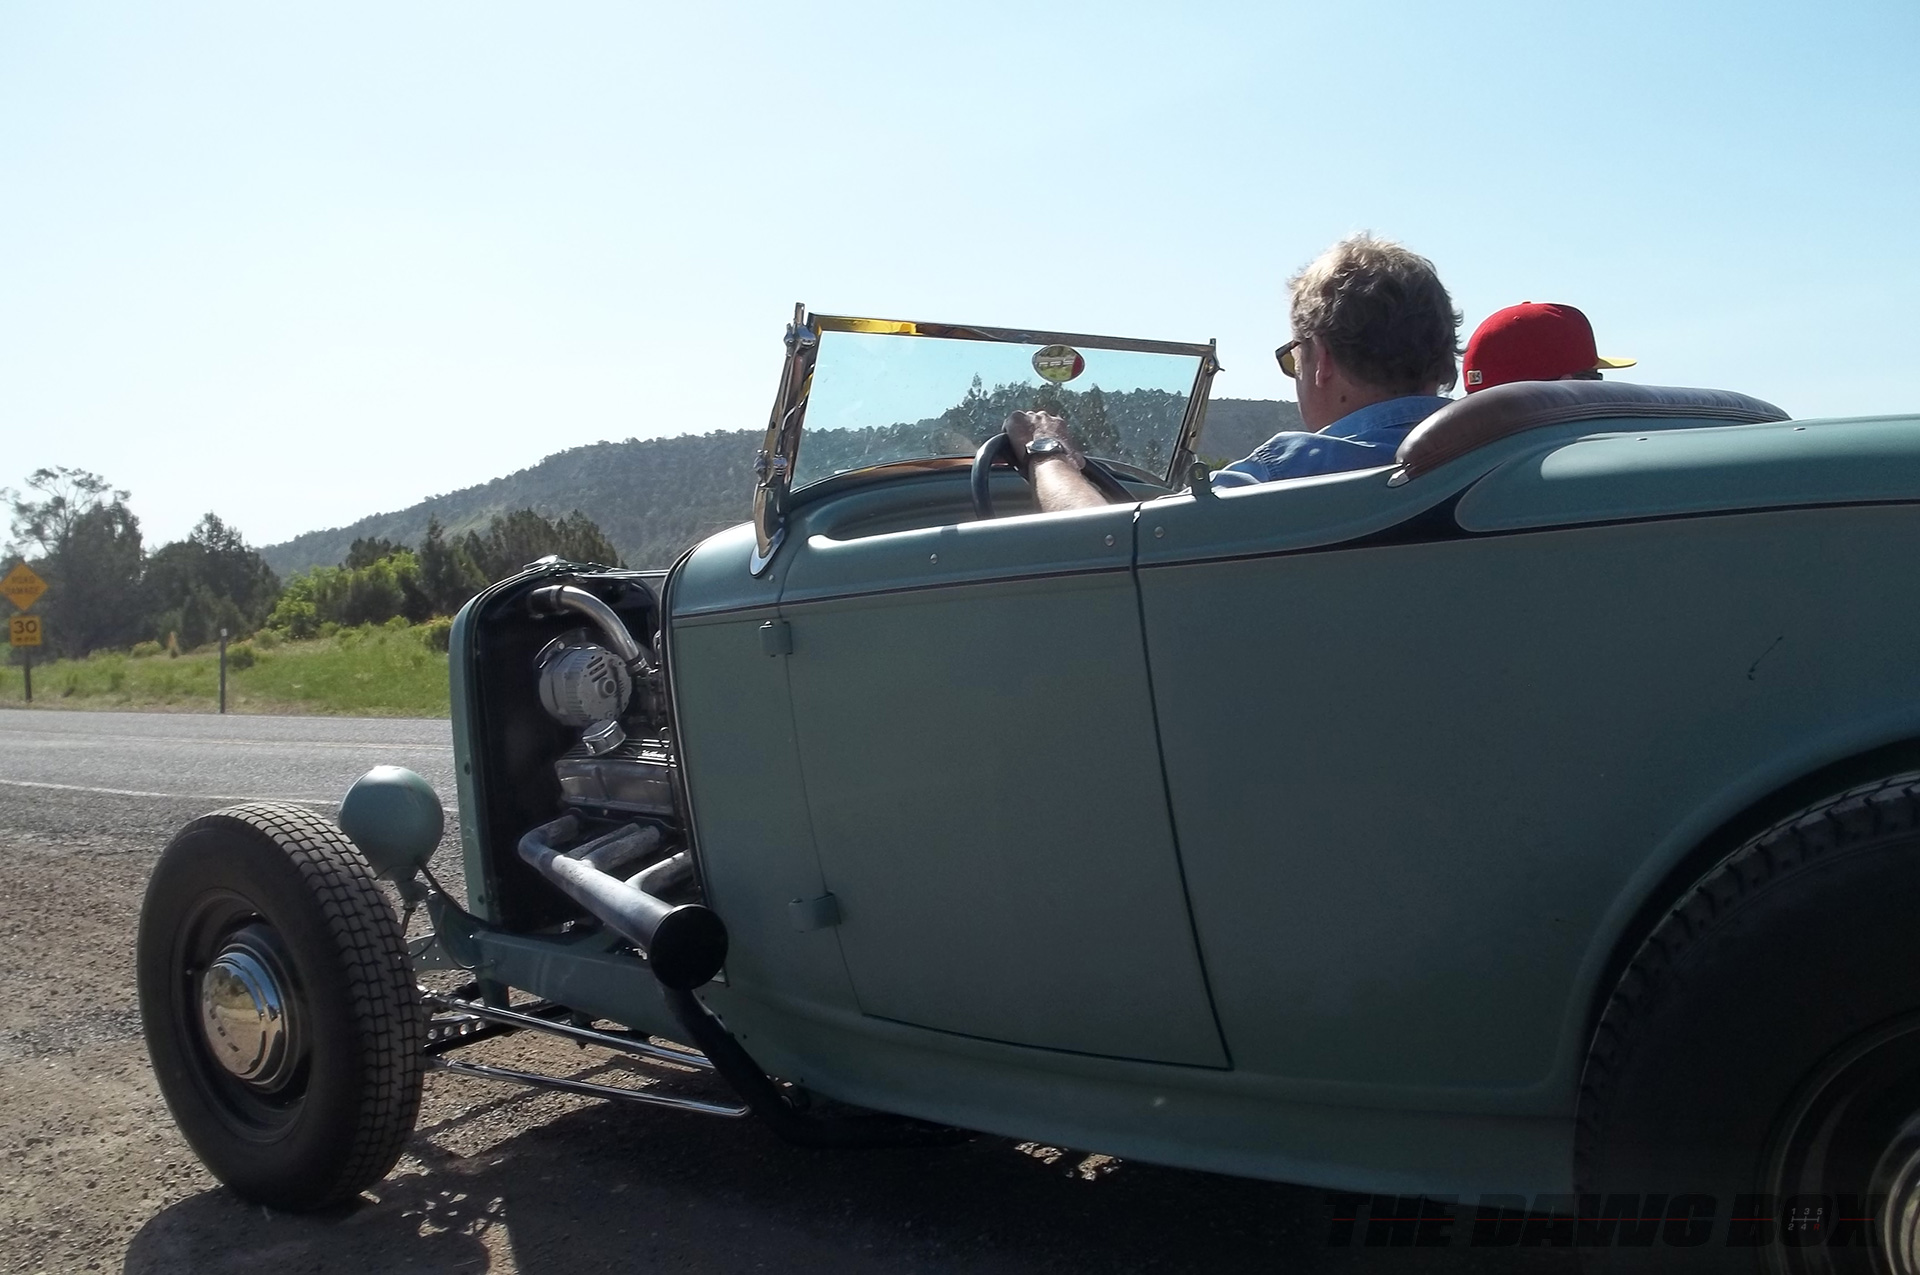 Henry Astor's '32 Ford Roadster being driven down the countryside